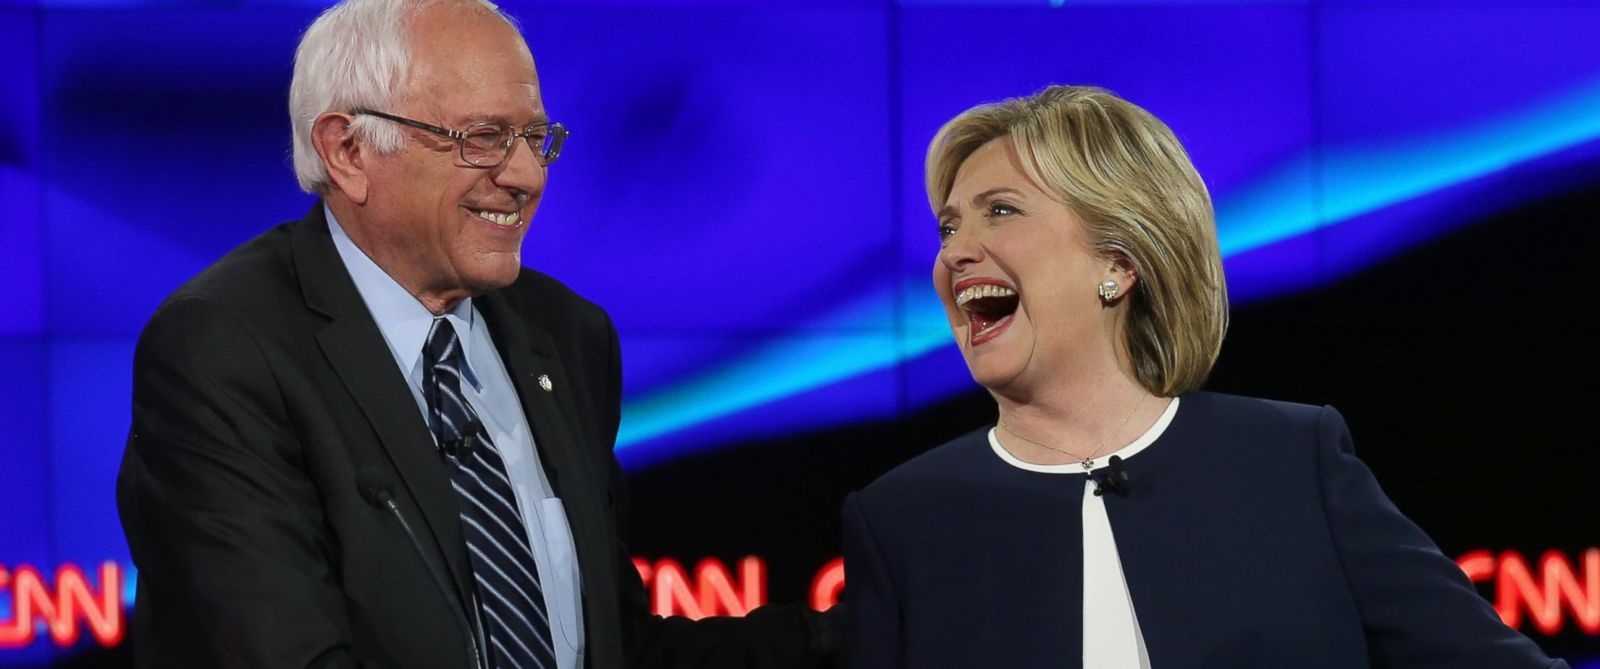 PHOTO: Democratic presidential candidates U.S. Sen. Bernie Sanders and Hillary Clinton take part in a presidential debate on CNN on Oct. 13, 2015 in Las Vegas.